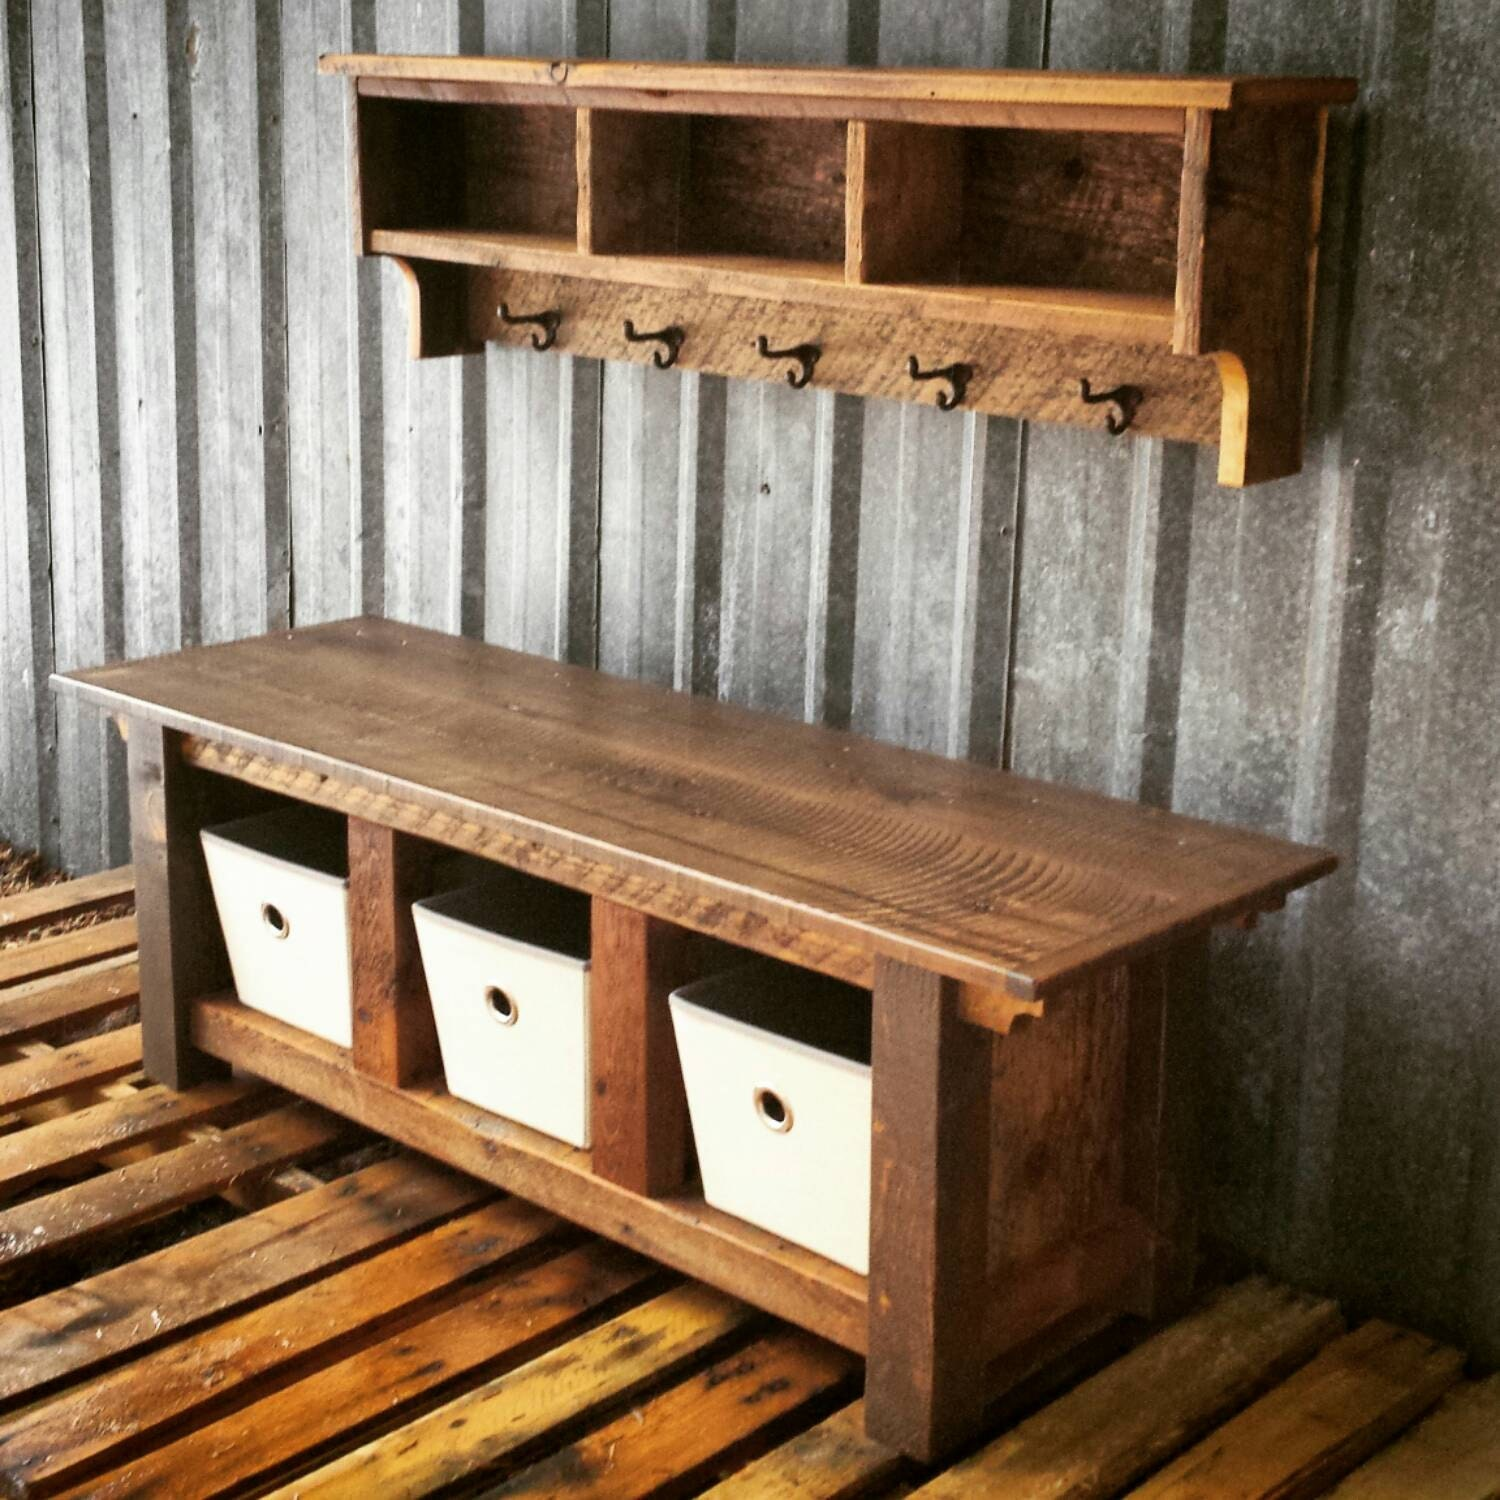 Reclaimed Barnwood Three Cubby Bench Shelf By Echopeakdesign